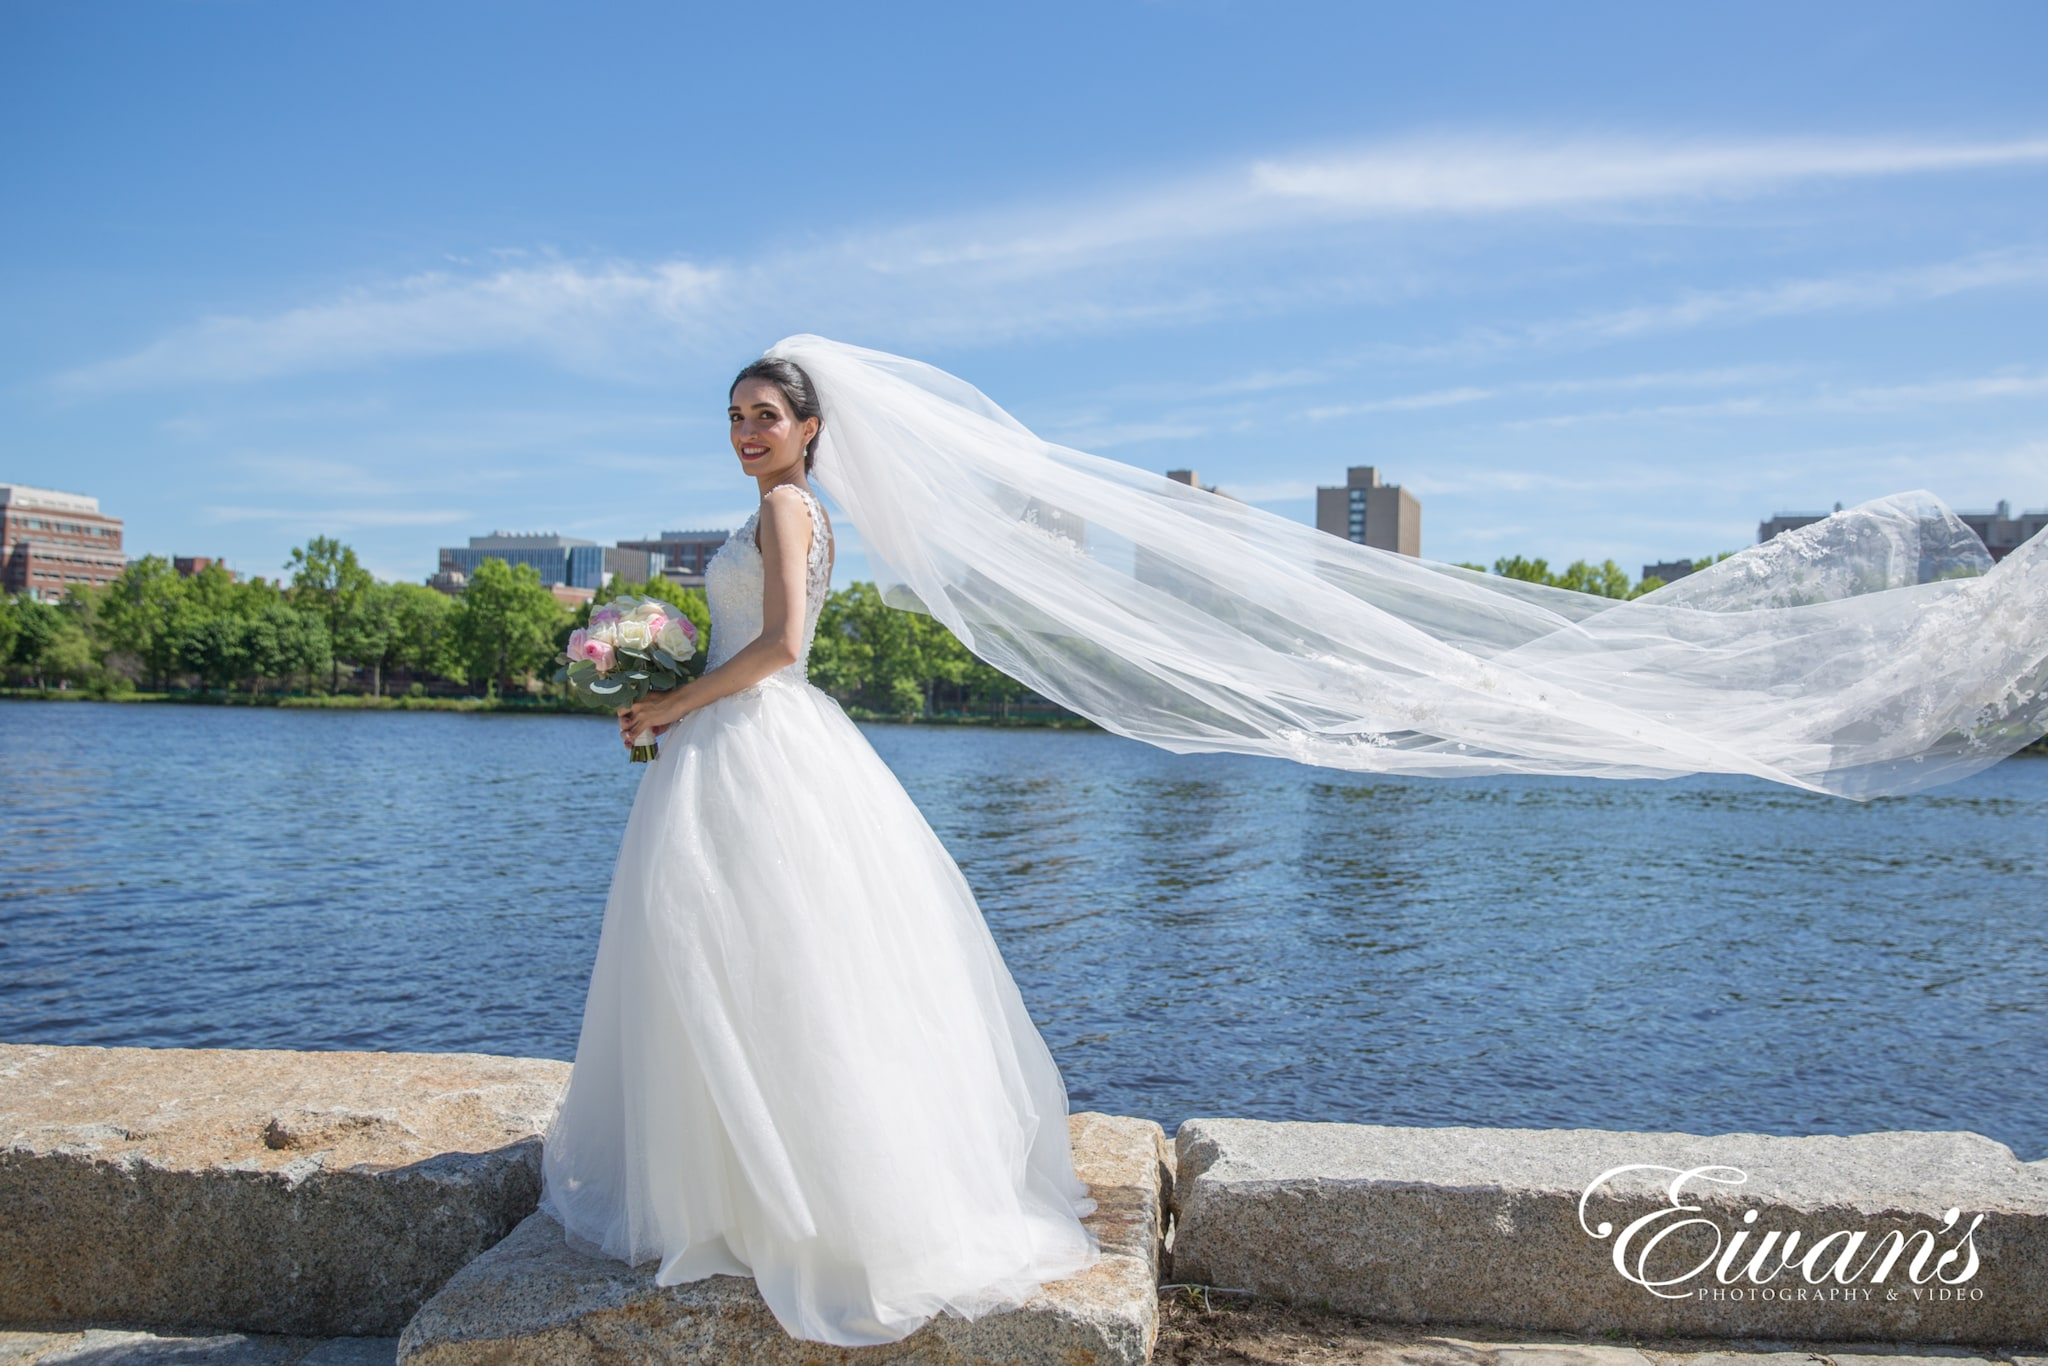 image of a woman in a wedding dress